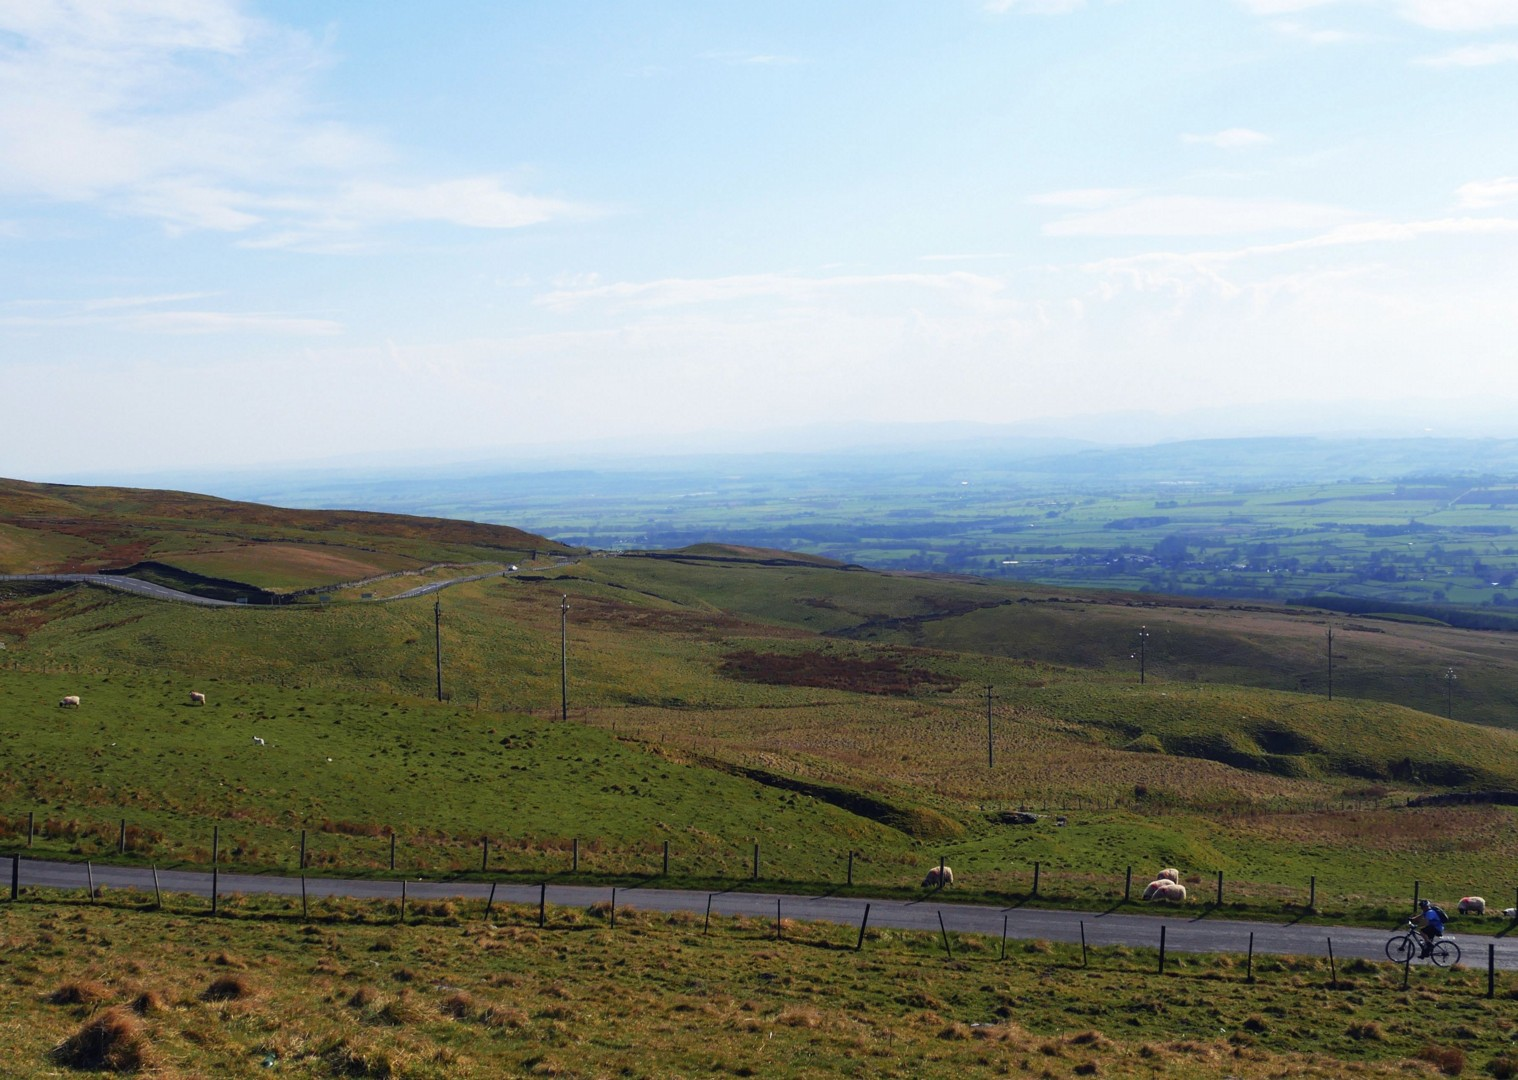 cycling-holiday-c2c-lakedistrict.jpg - UK - C2C - Coast to Coast 5 Days Cycling - Self-Guided Leisure Cycling Holiday - Leisure Cycling